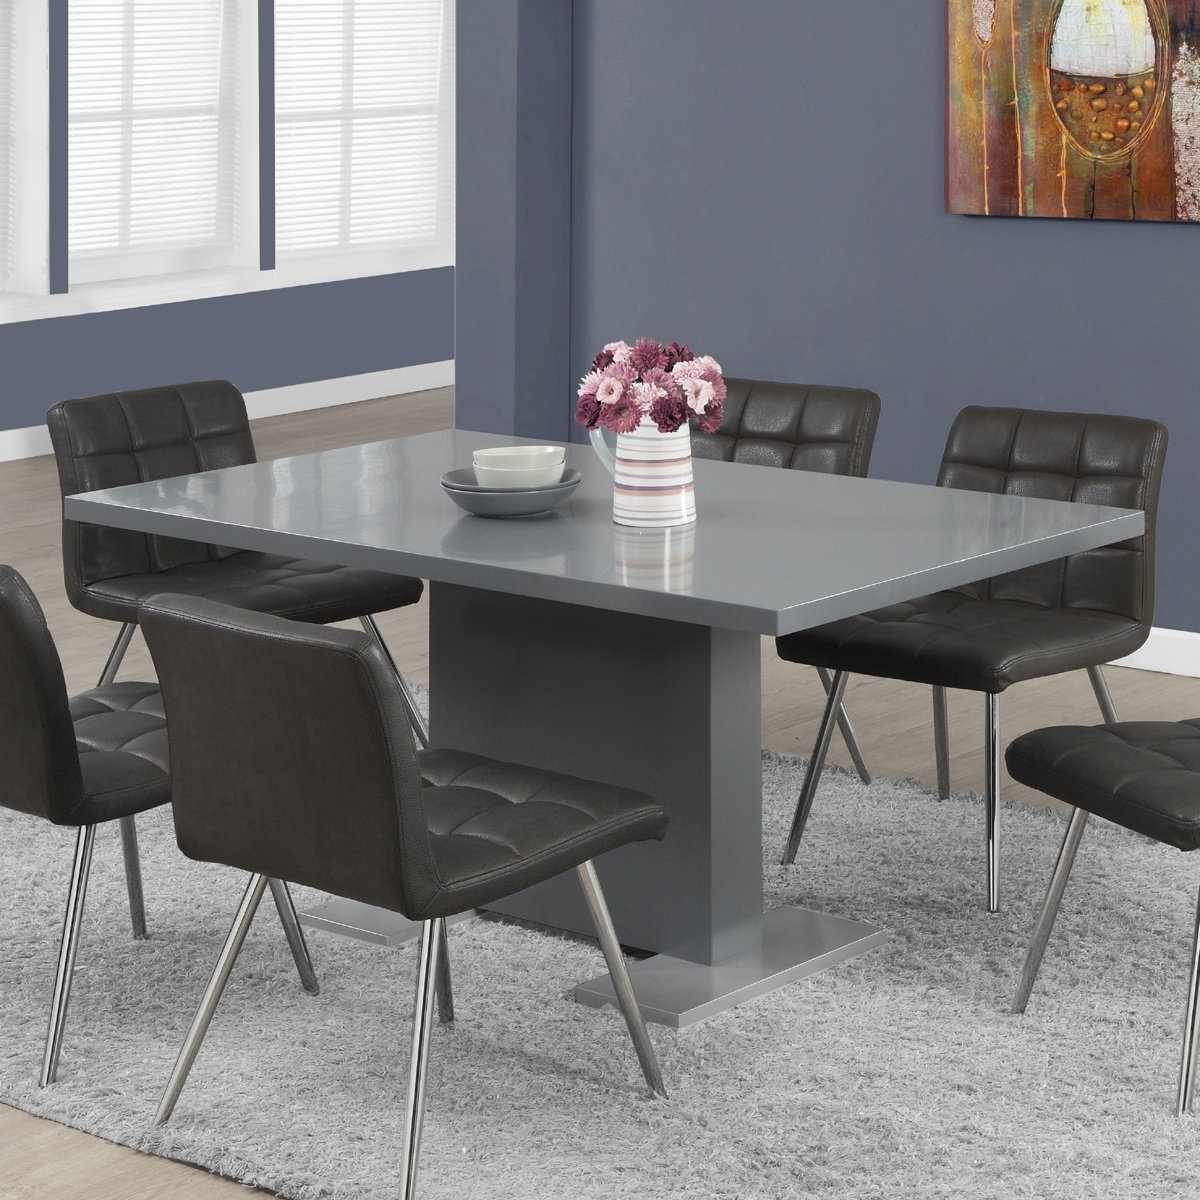 Modgsi Dining Furniture Vancouver (View 18 of 25)